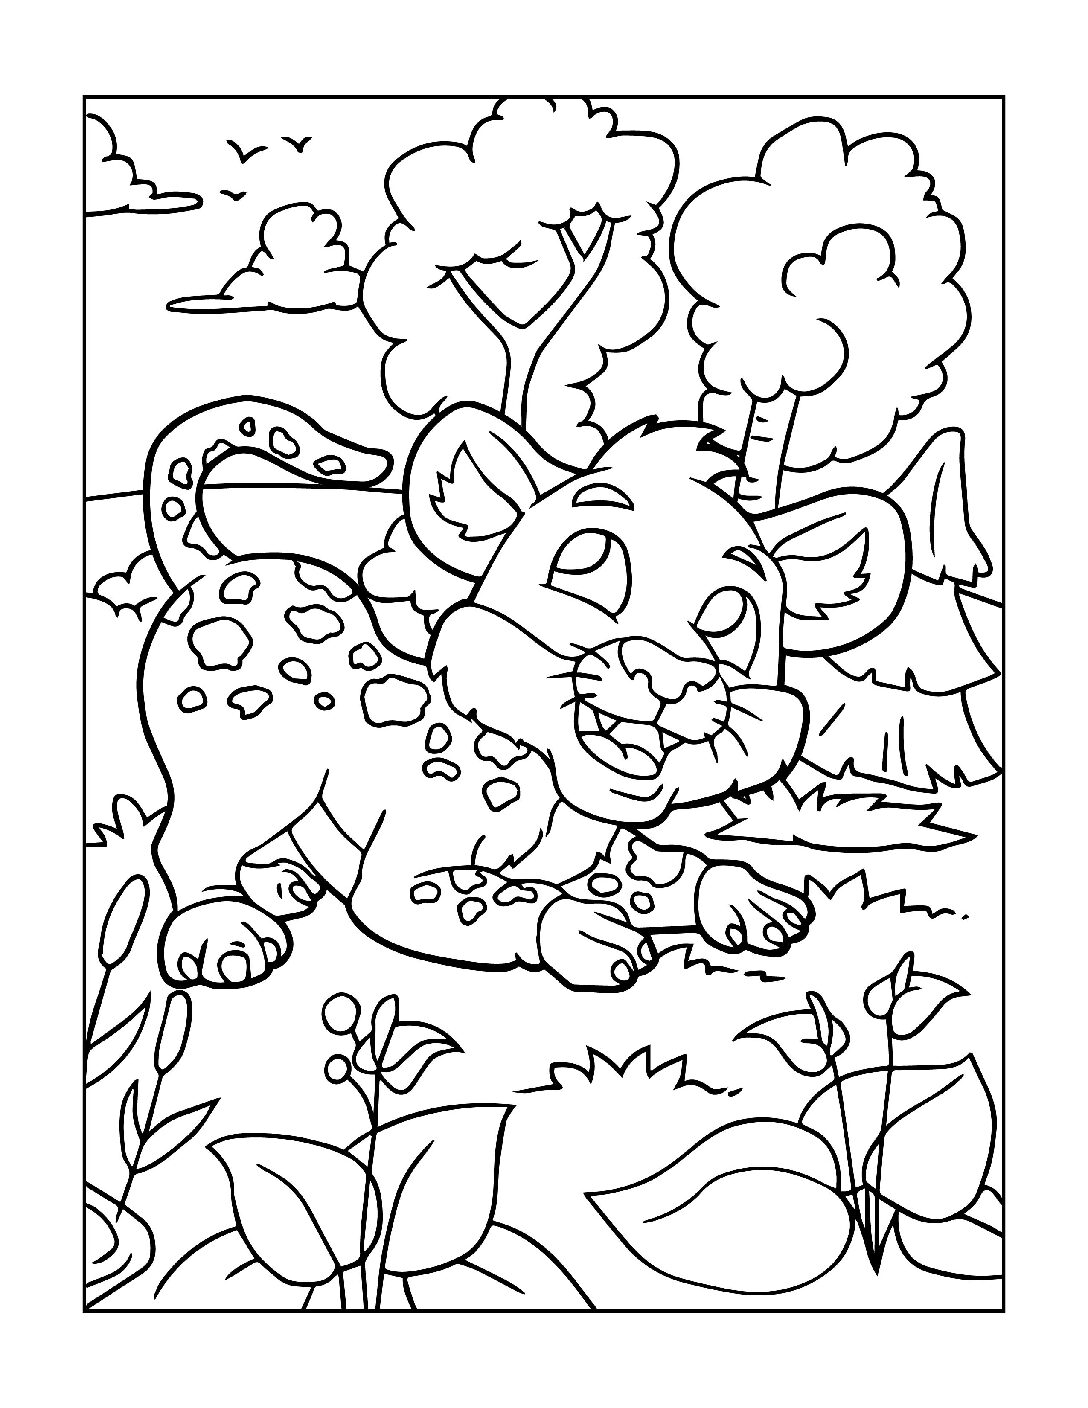 zoo animal coloring zoo animals coloring pages best coloring pages for kids zoo coloring animal